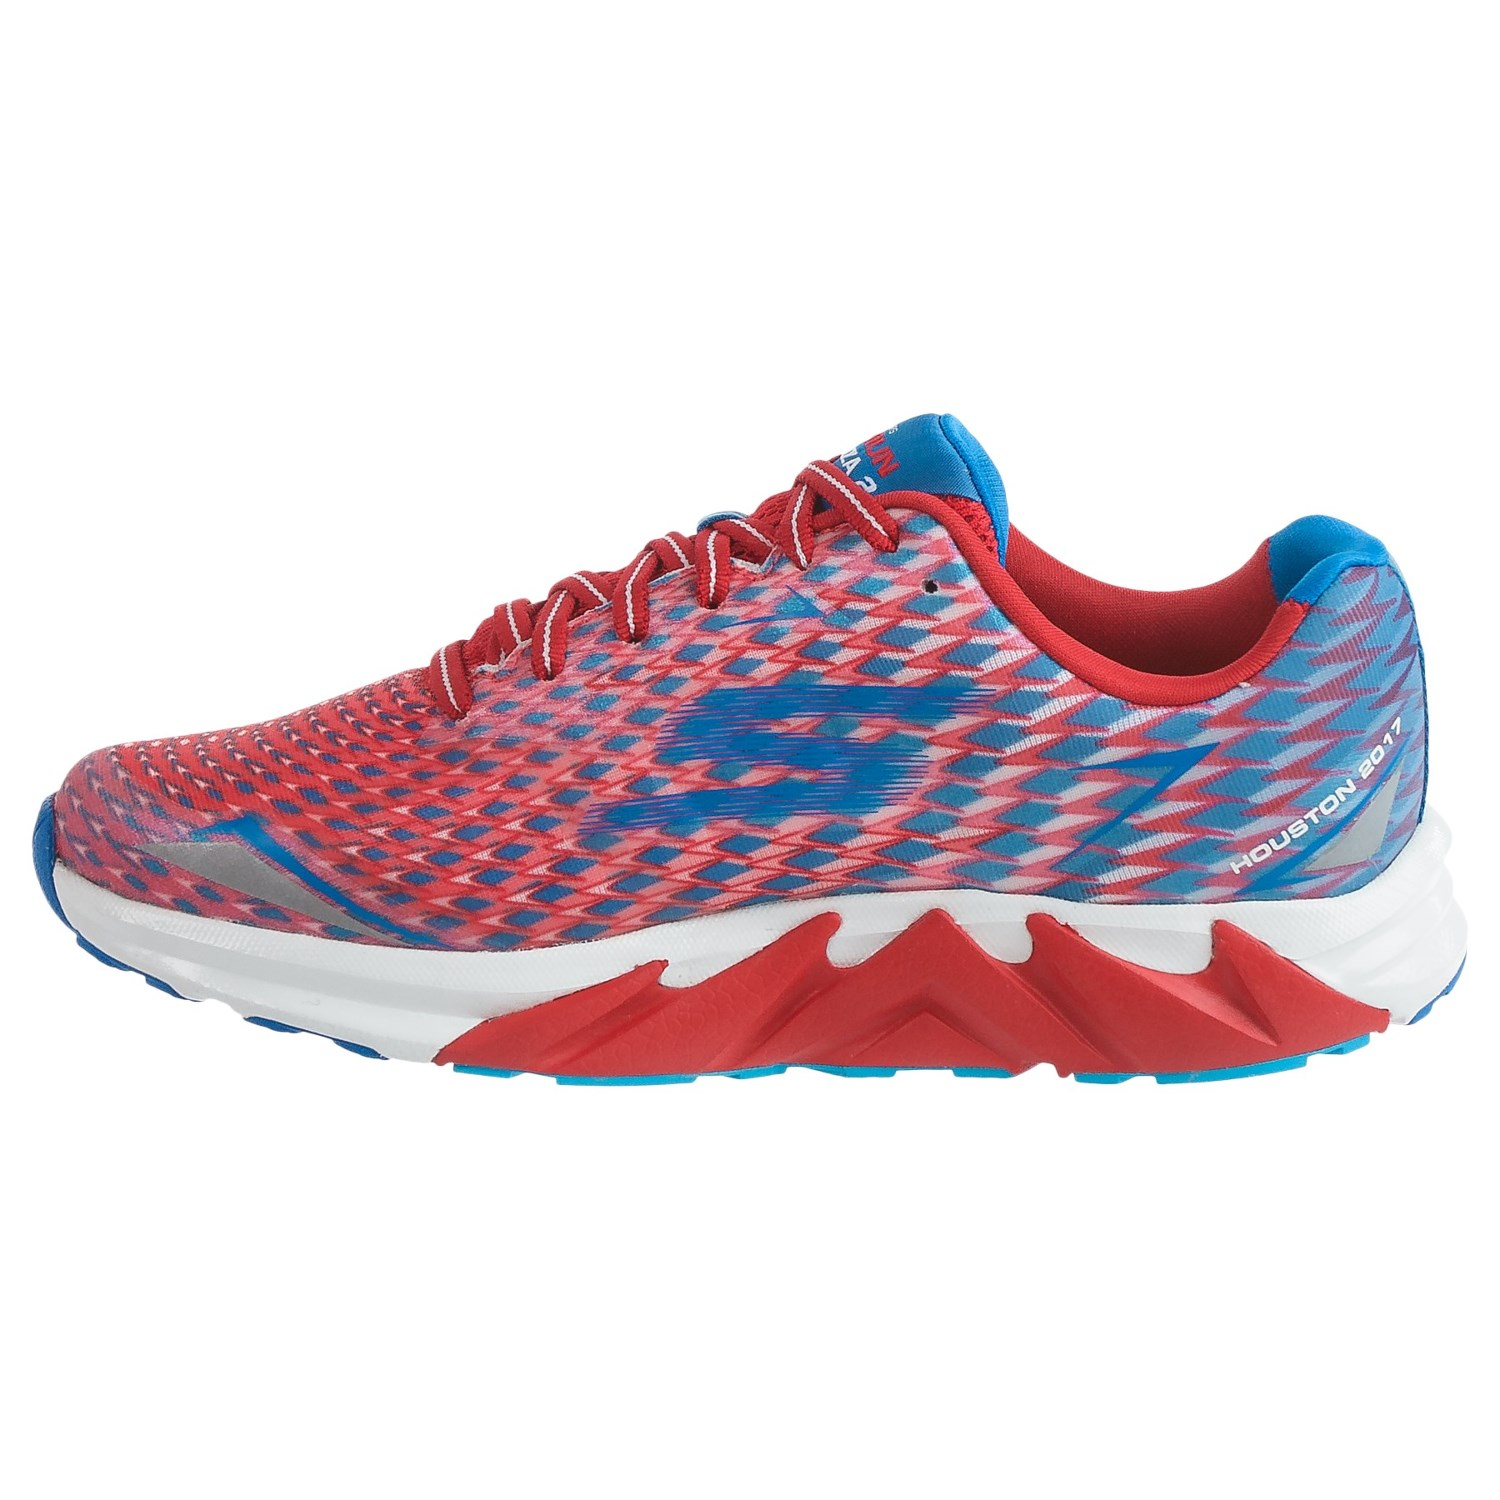 Where To Buy Running Shoes In Colorado Springs